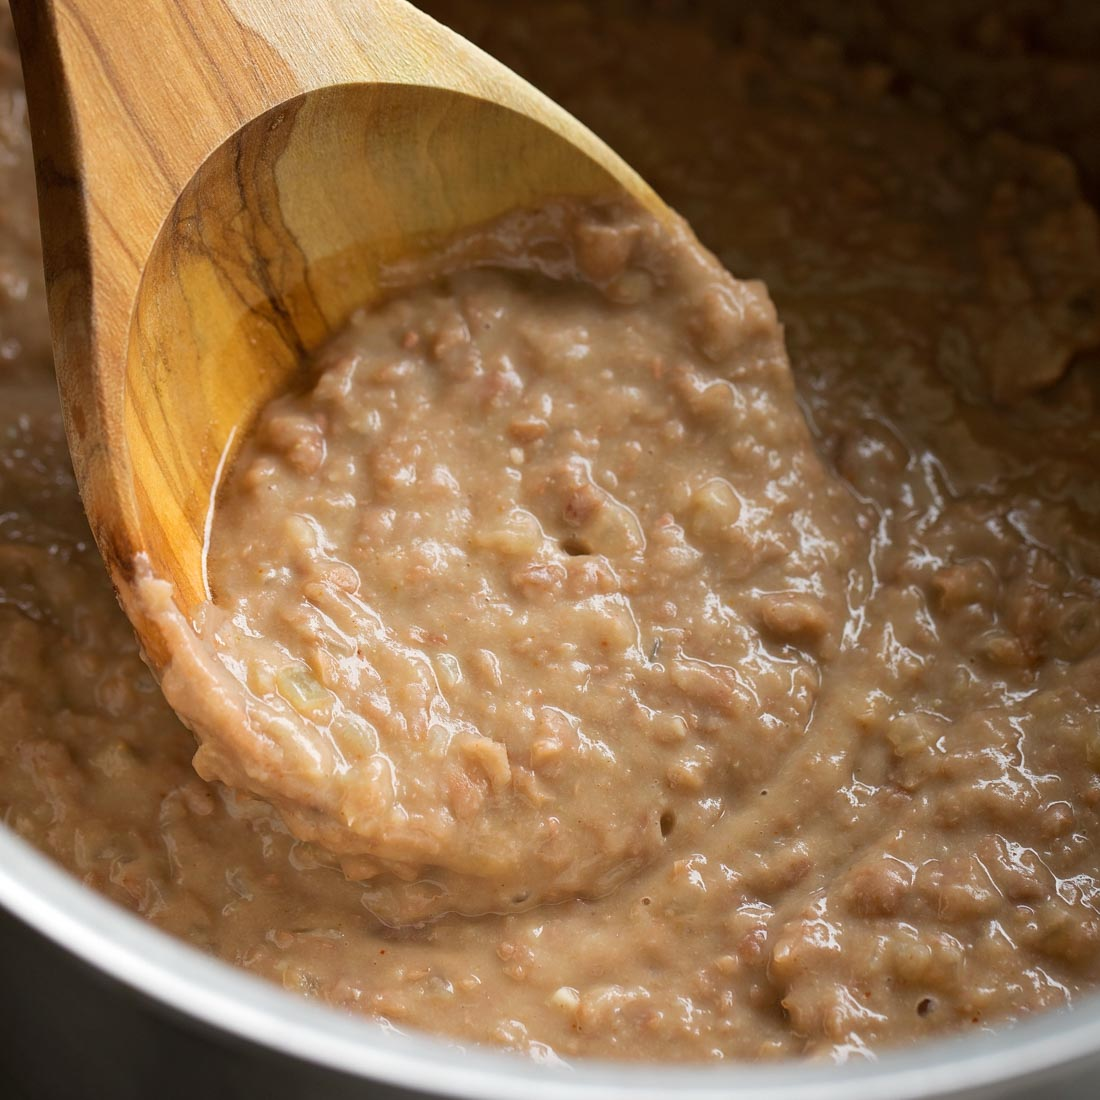 Creamy refried pinto beans on wooden spoon in pot